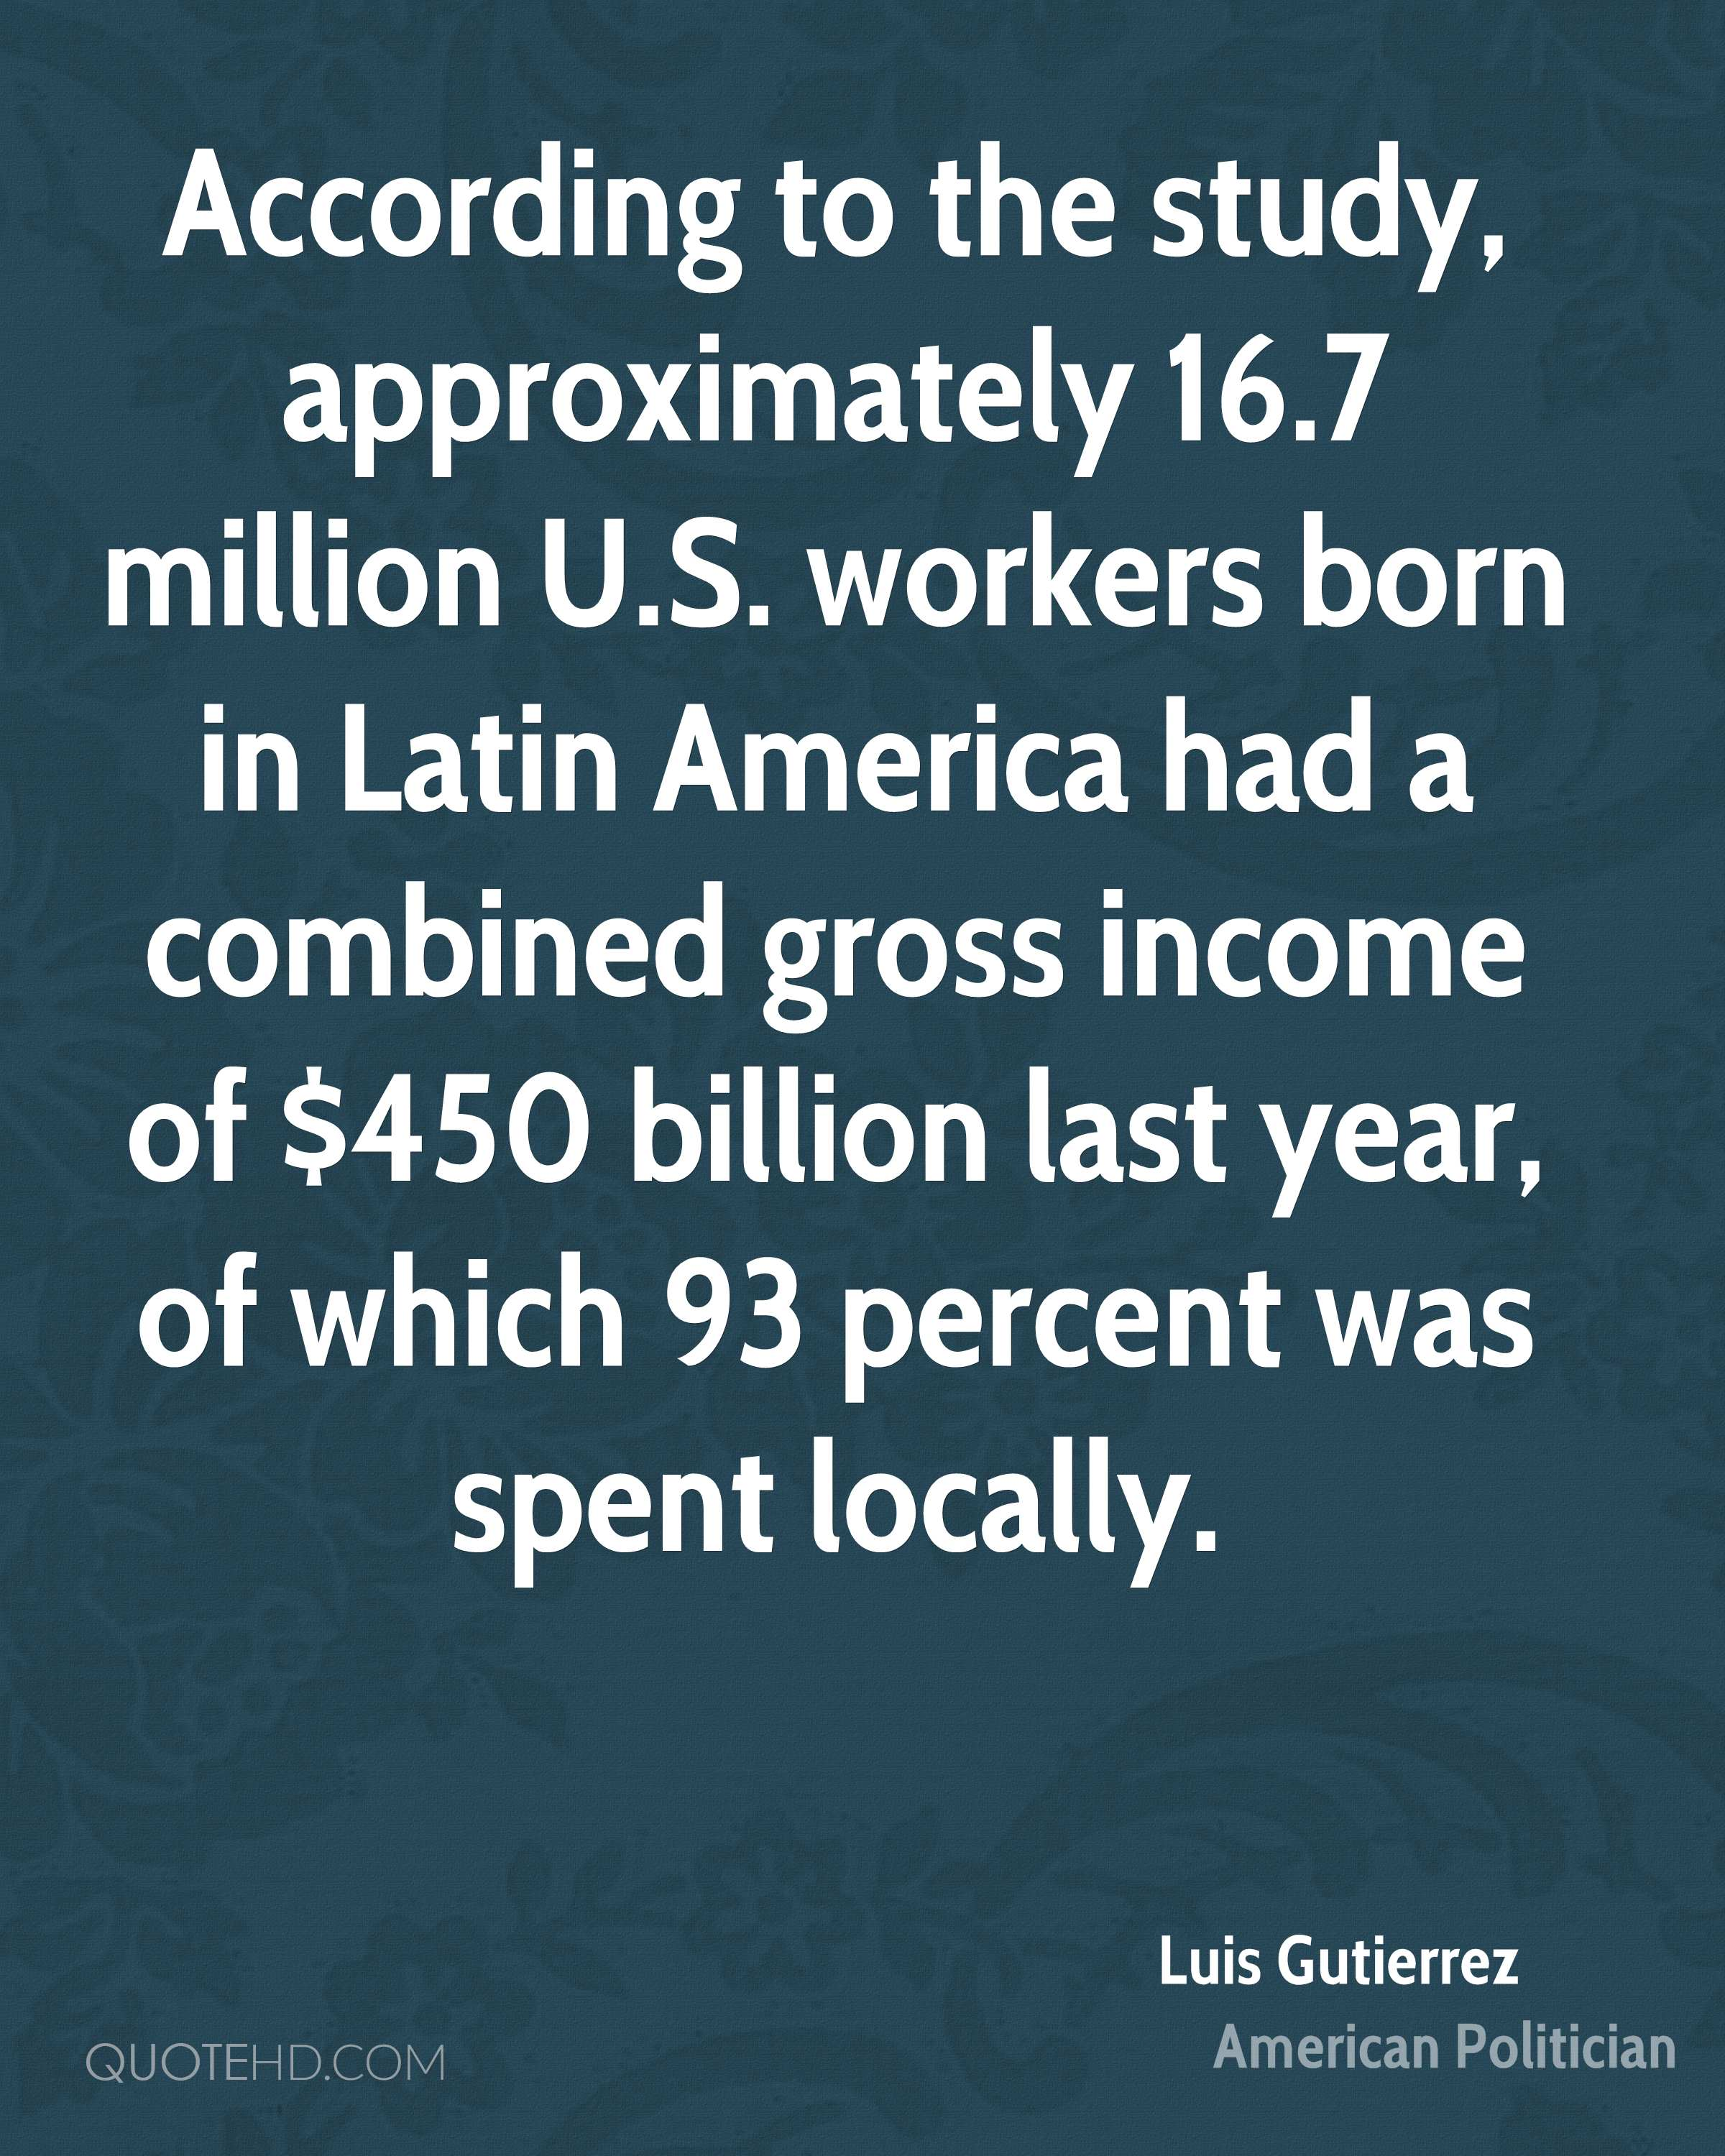 According to the study, approximately 16.7 million U.S. workers born in Latin America had a combined gross income of $450 billion last year, of which 93 percent was spent locally.